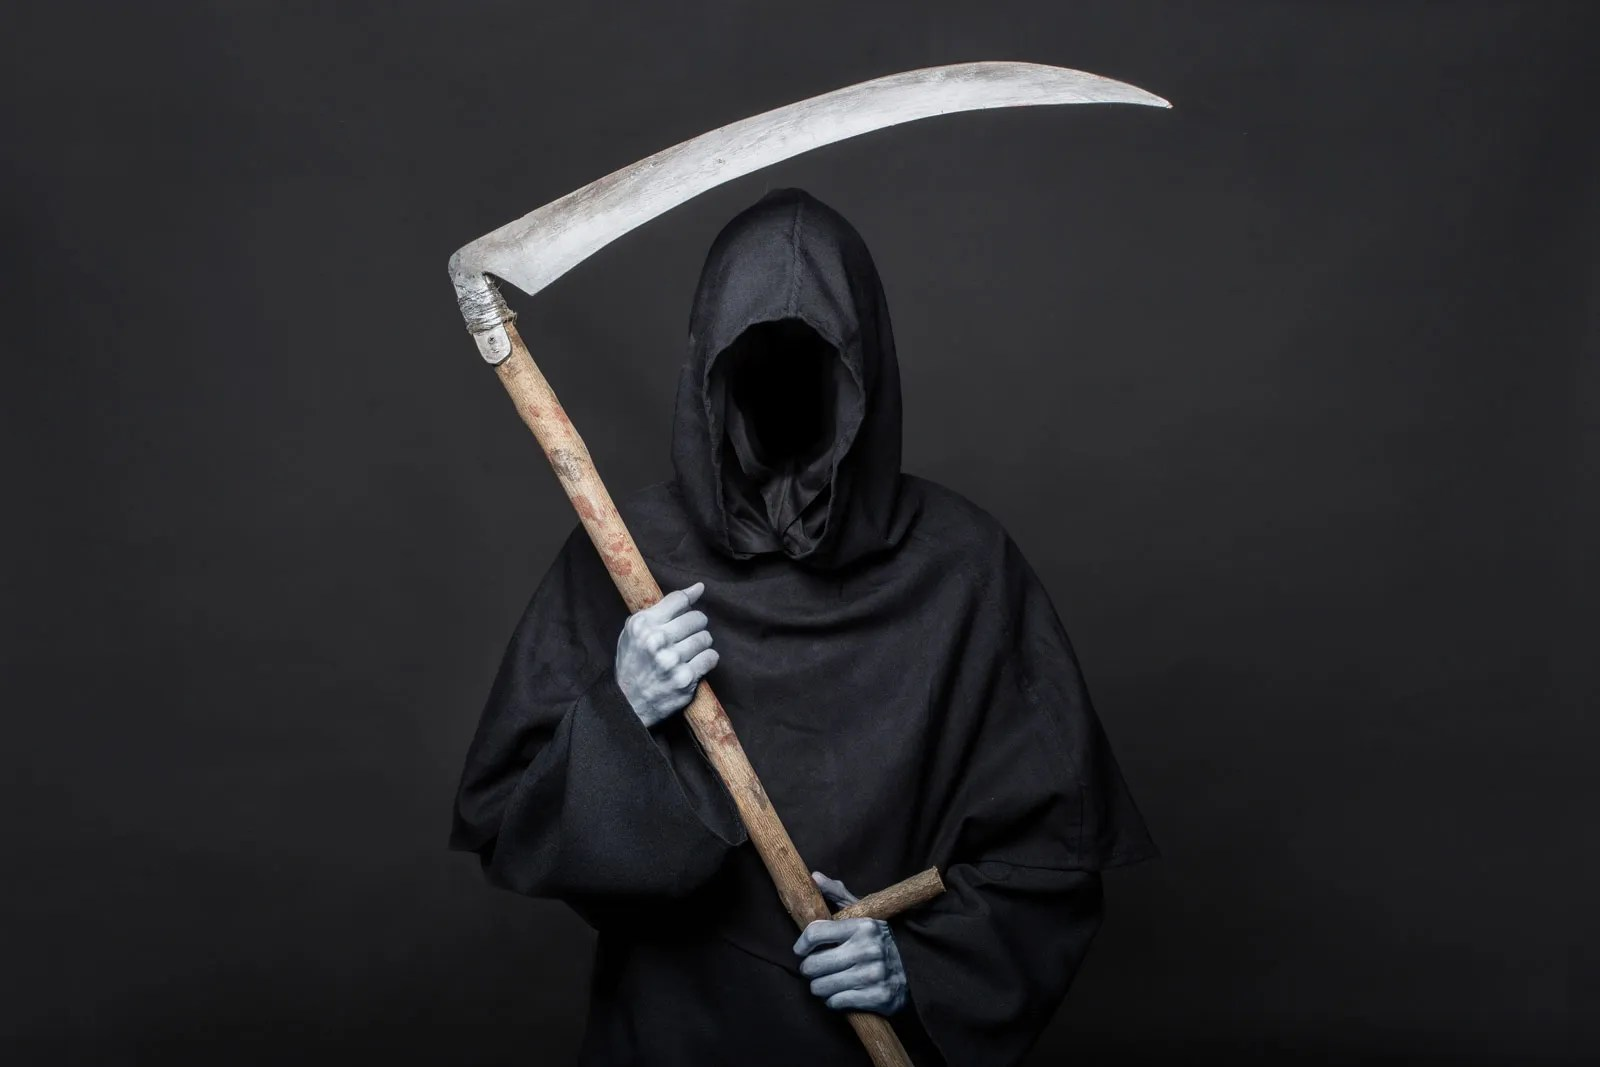 """Where Does the Concept of a """"Grim Reaper"""" Come From? 